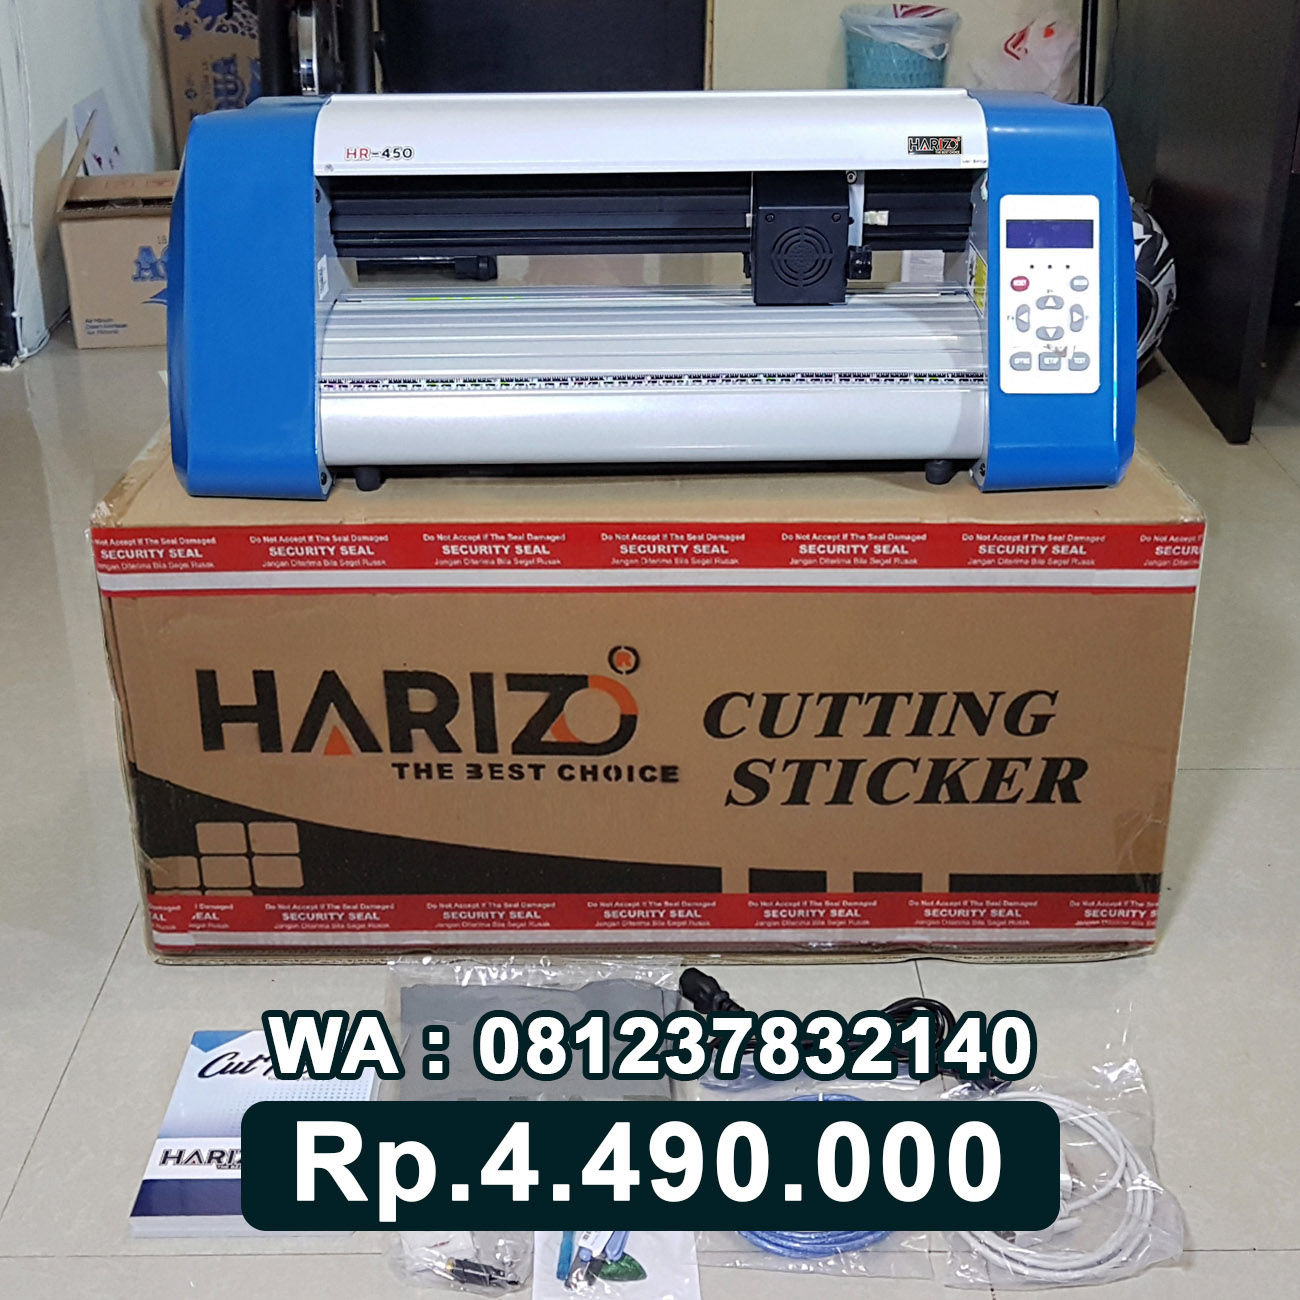 JUAL MESIN CUTTING STICKER HARIZO 450 Kotabumi